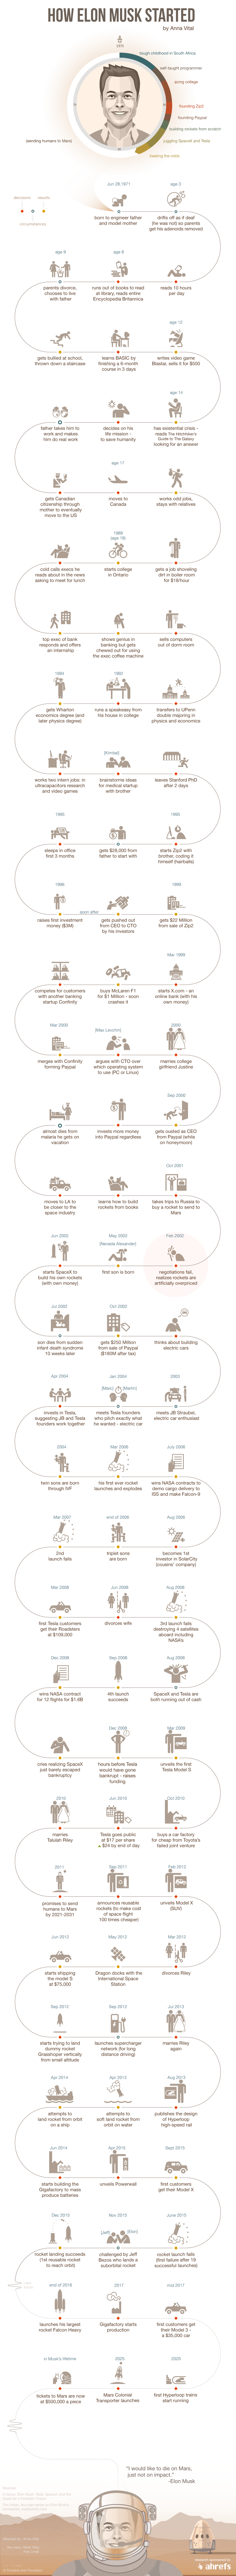 How-elon-musk-started-infographic. Motivational and Inspiring story of success.